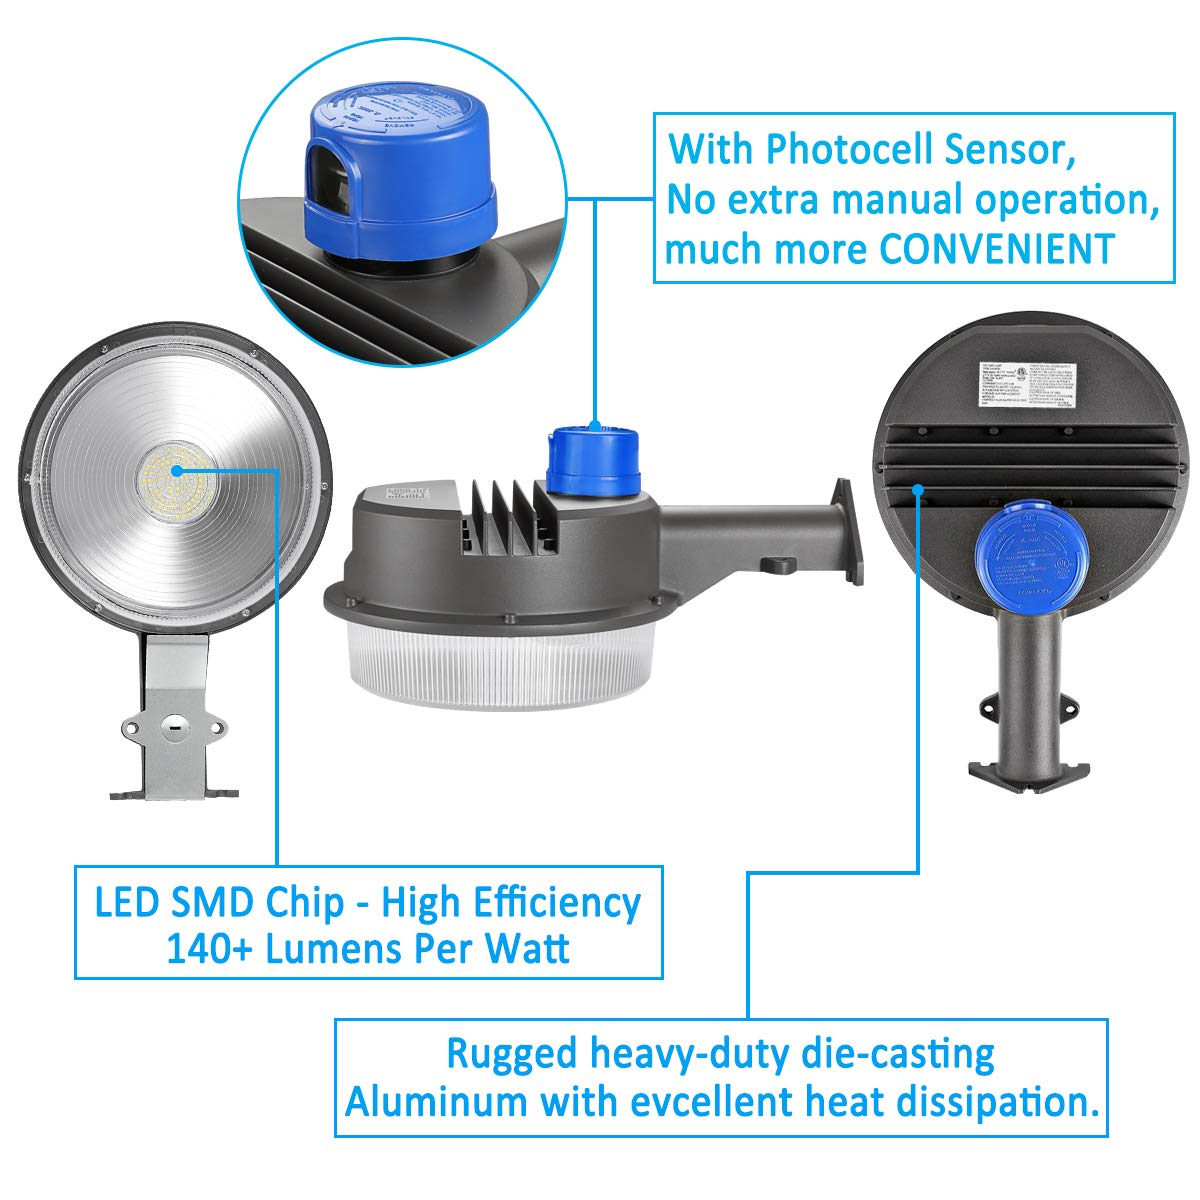 70W LED Barn Lights LEDMO - with Monuting Arm 9100lm Dusk to Dawn LED Outdoor Security Flood Lights with Photocell Area Lighting 5000K Daylight LED Yard Lights Brightest Waterproof by LEDMO (Image #3)